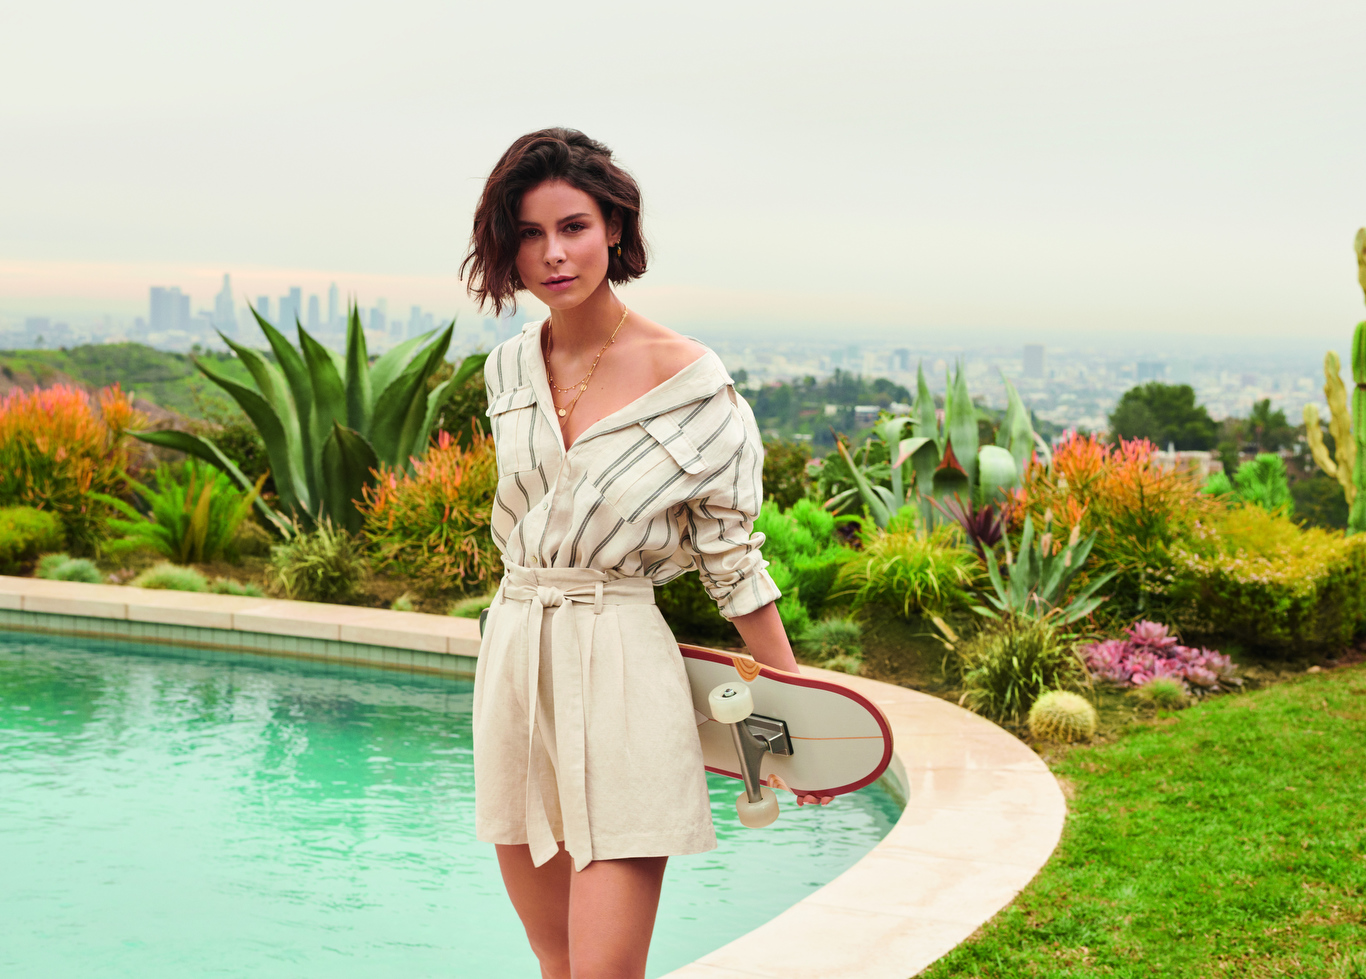 H&M campaign featuring one of Germany's biggest pop-stars, Lena Meyer-Landrut